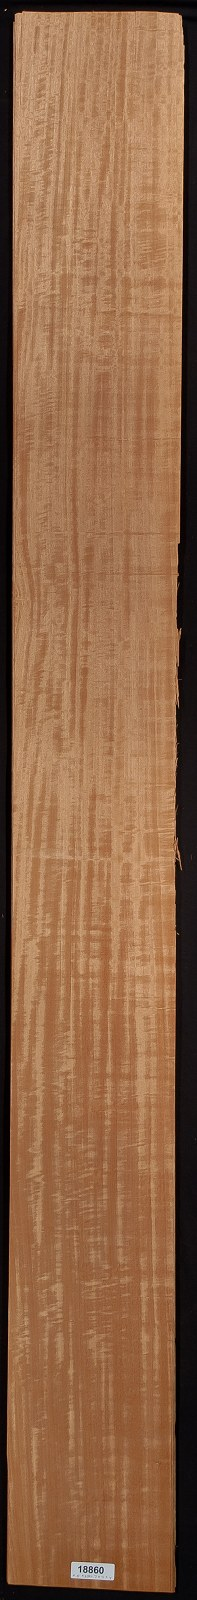 AAA Quartersawn Anigre Veneer Lot